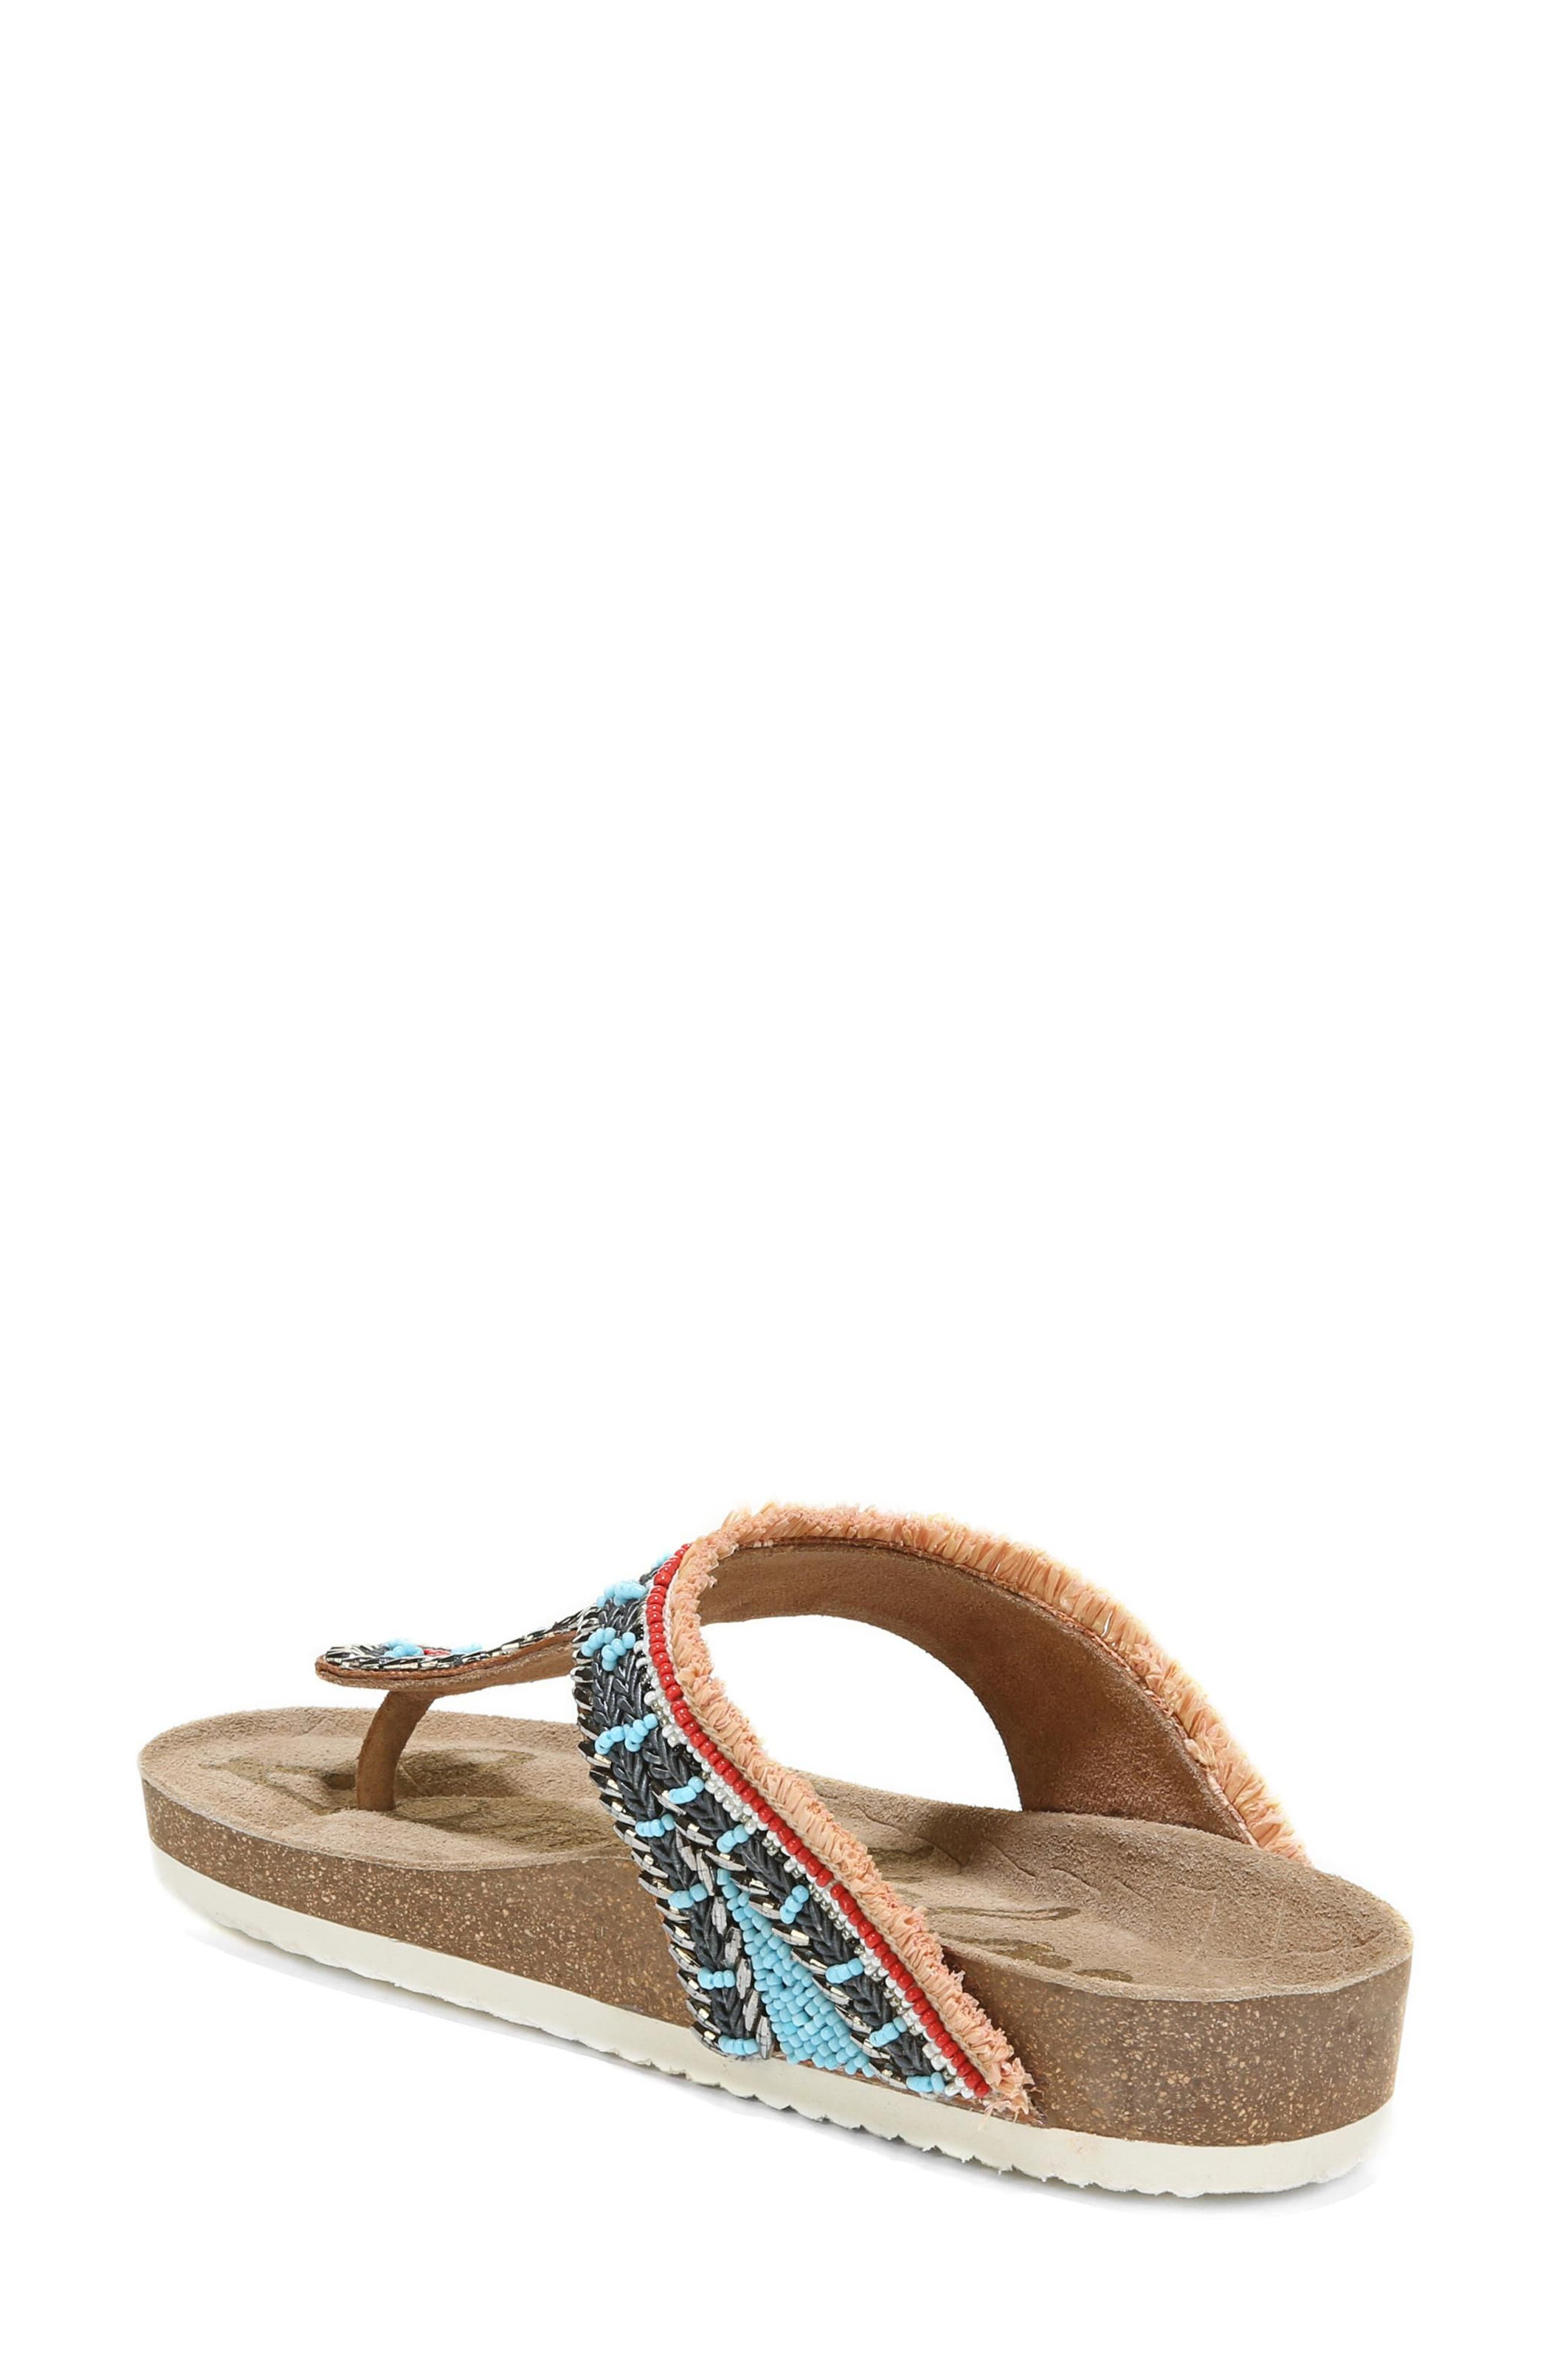 Olivie Beaded Flip Flop,                             Alternate thumbnail 2, color,                             SADDLE/ BLUE MULTI